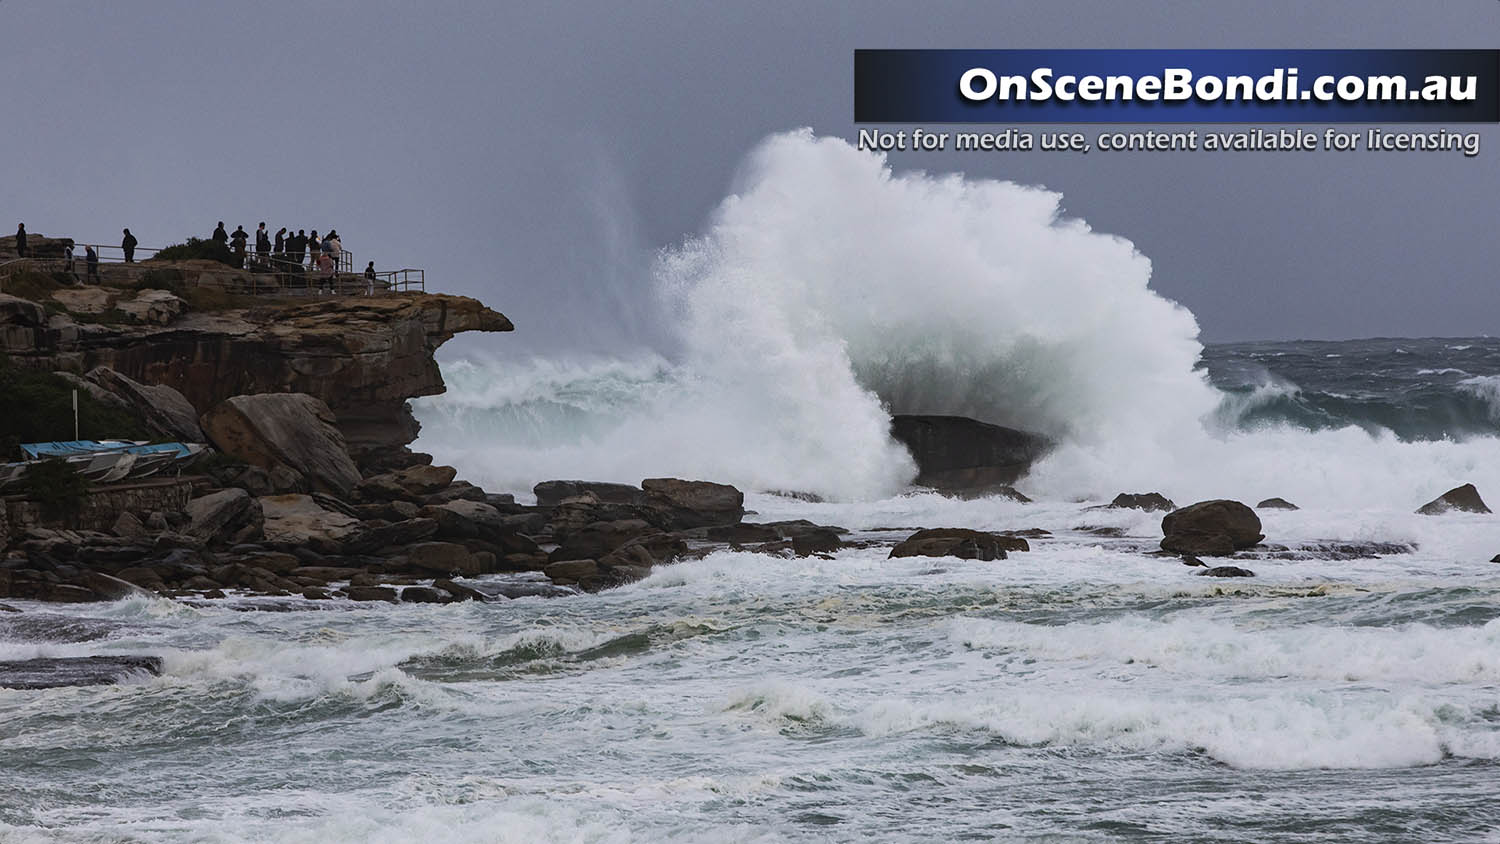 Huge waves impact the east coast of NSW with some daring to take them on at Bondi Beach